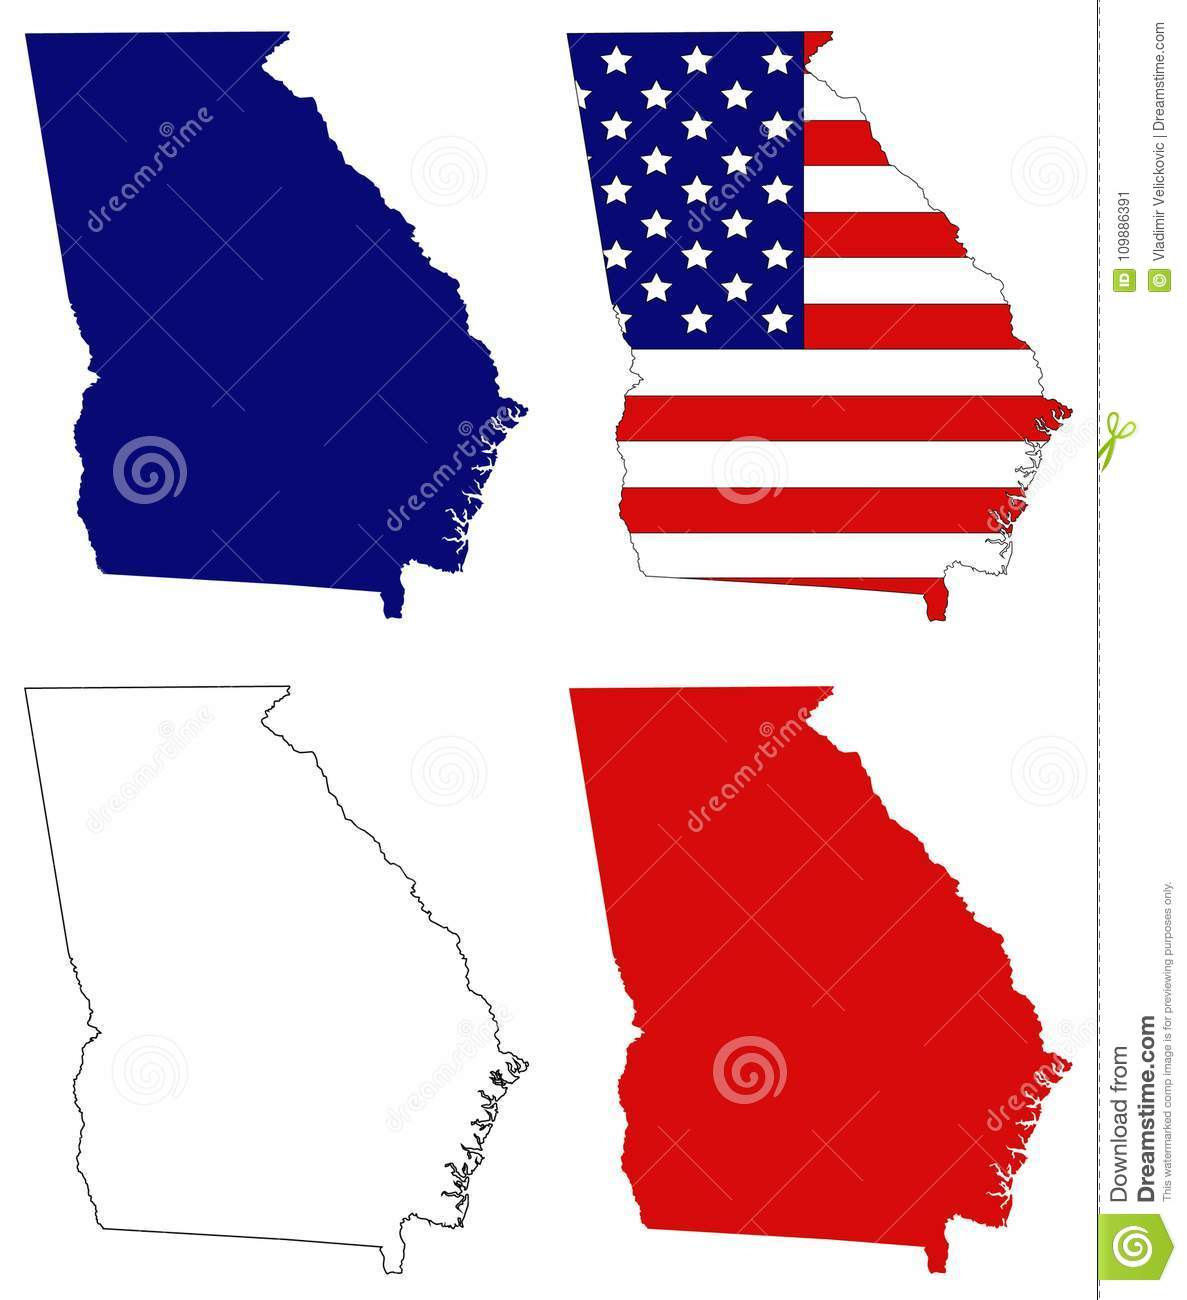 Map Of Usa Georgia.Georgia Map With Usa Flag State In The Southeastern United States